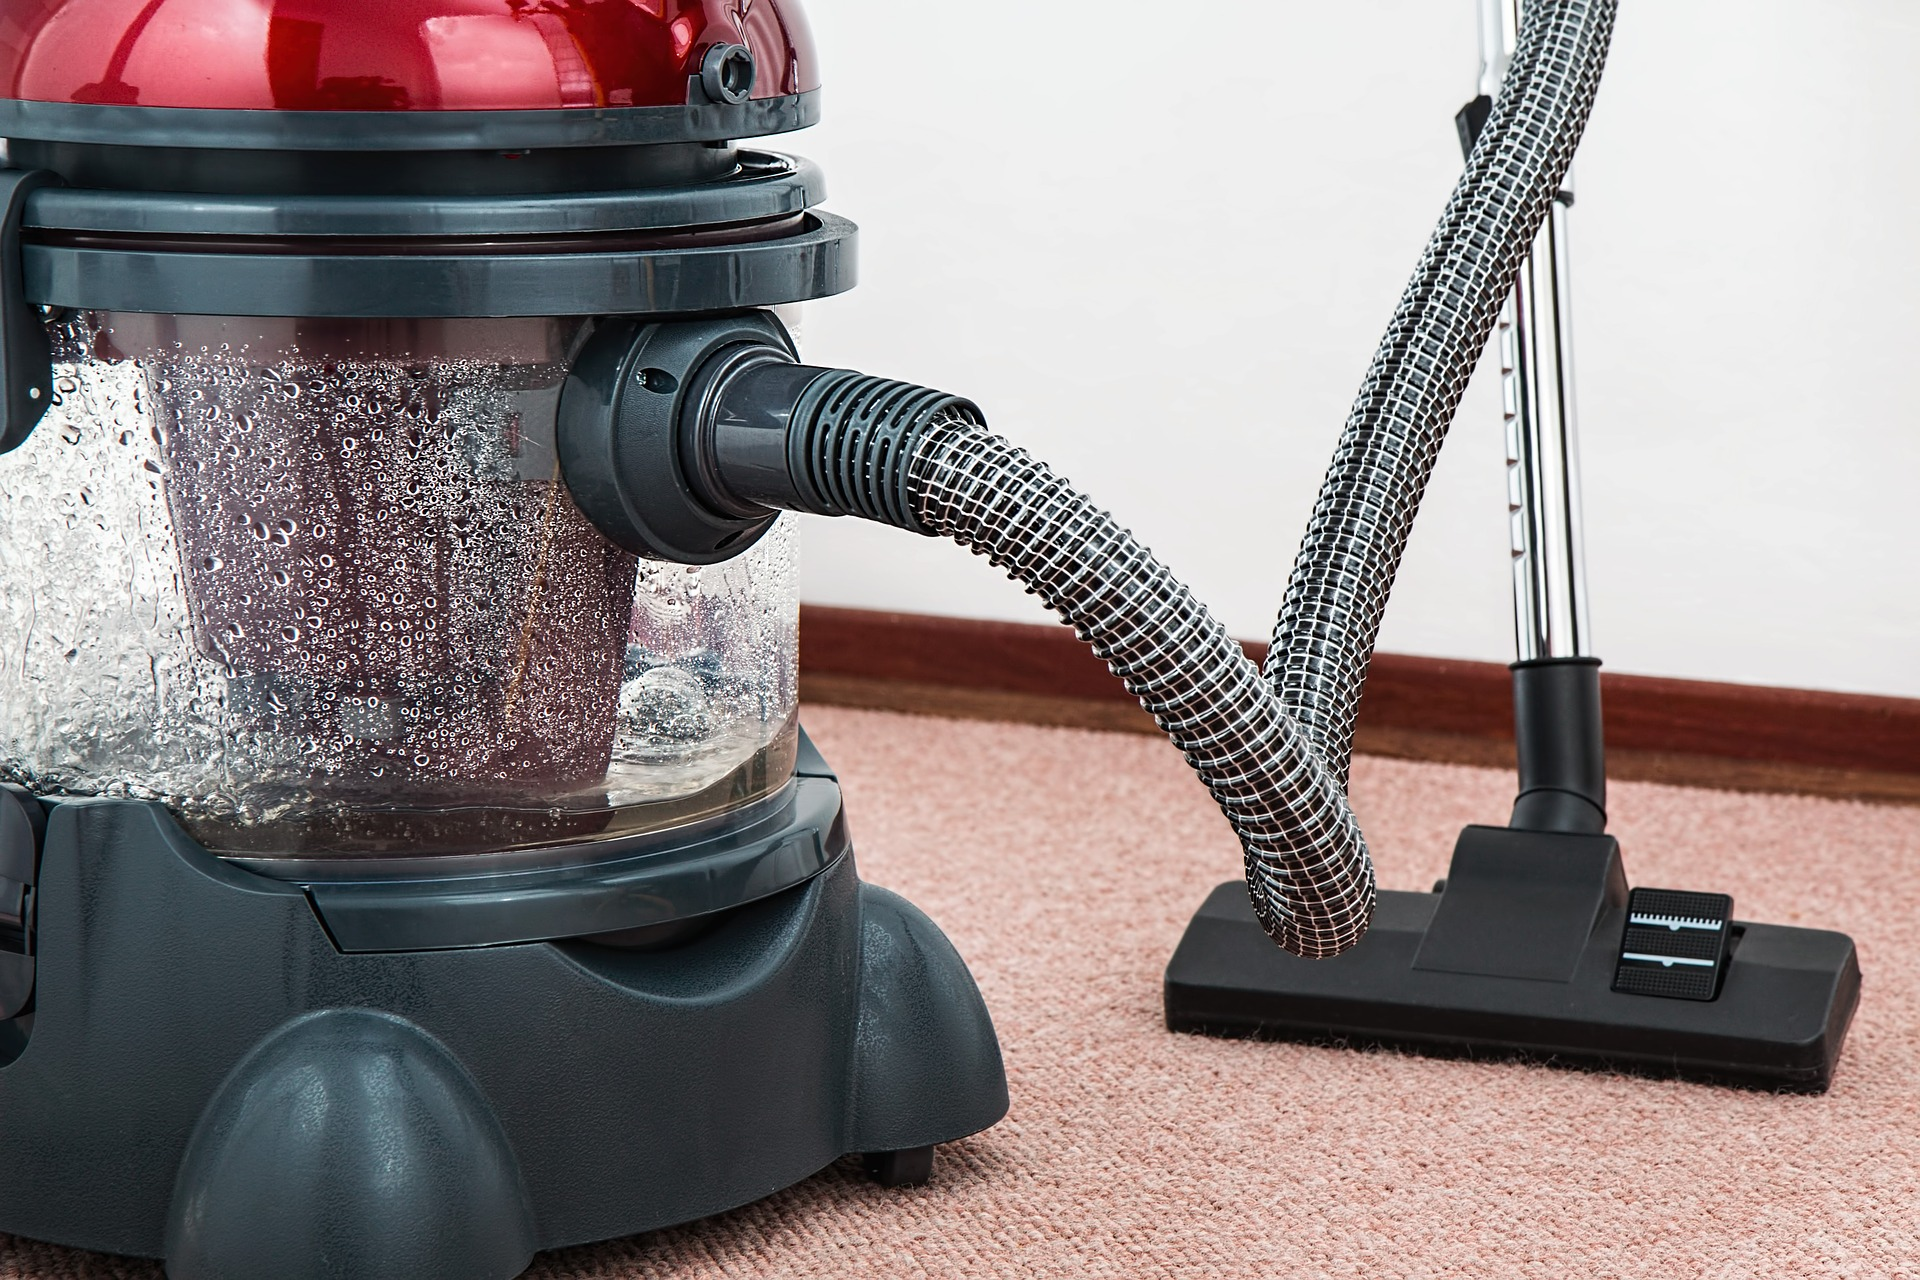 Commercial cleaning services will include vacuuming the office carpets.